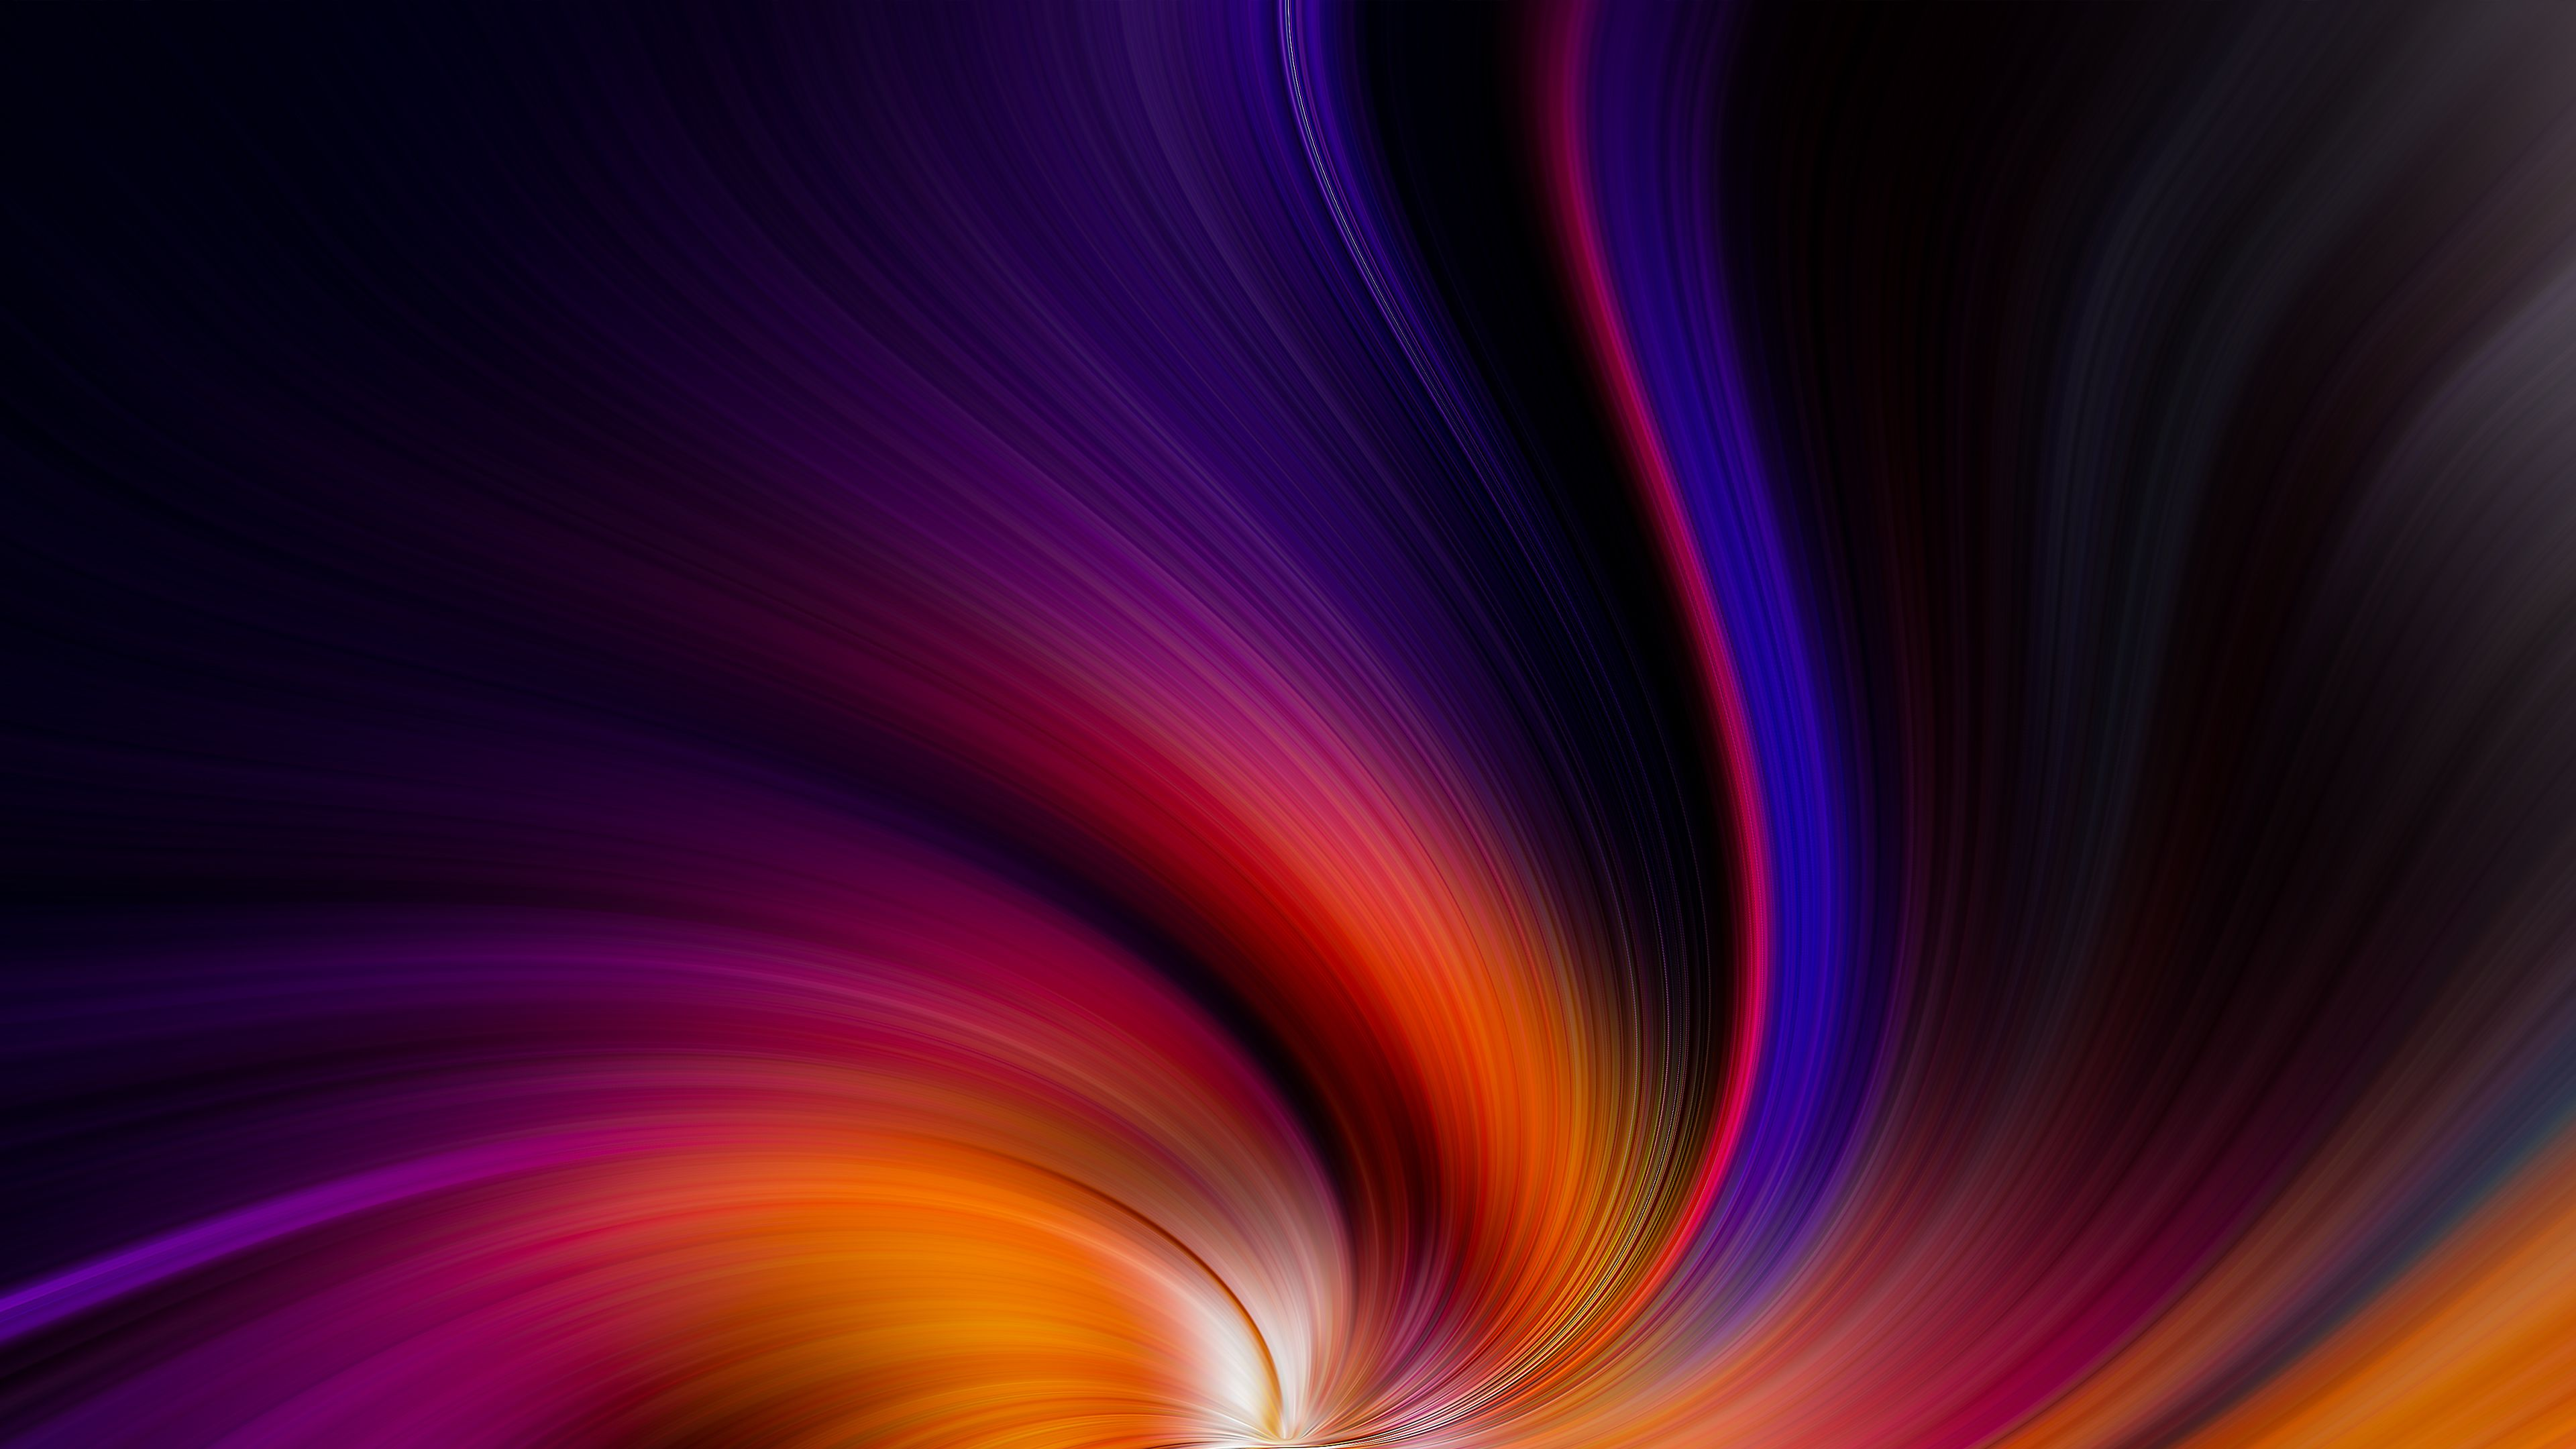 Colorful Abstract Swirl Abstract Abstract Wallpaper Widescreen Wallpaper